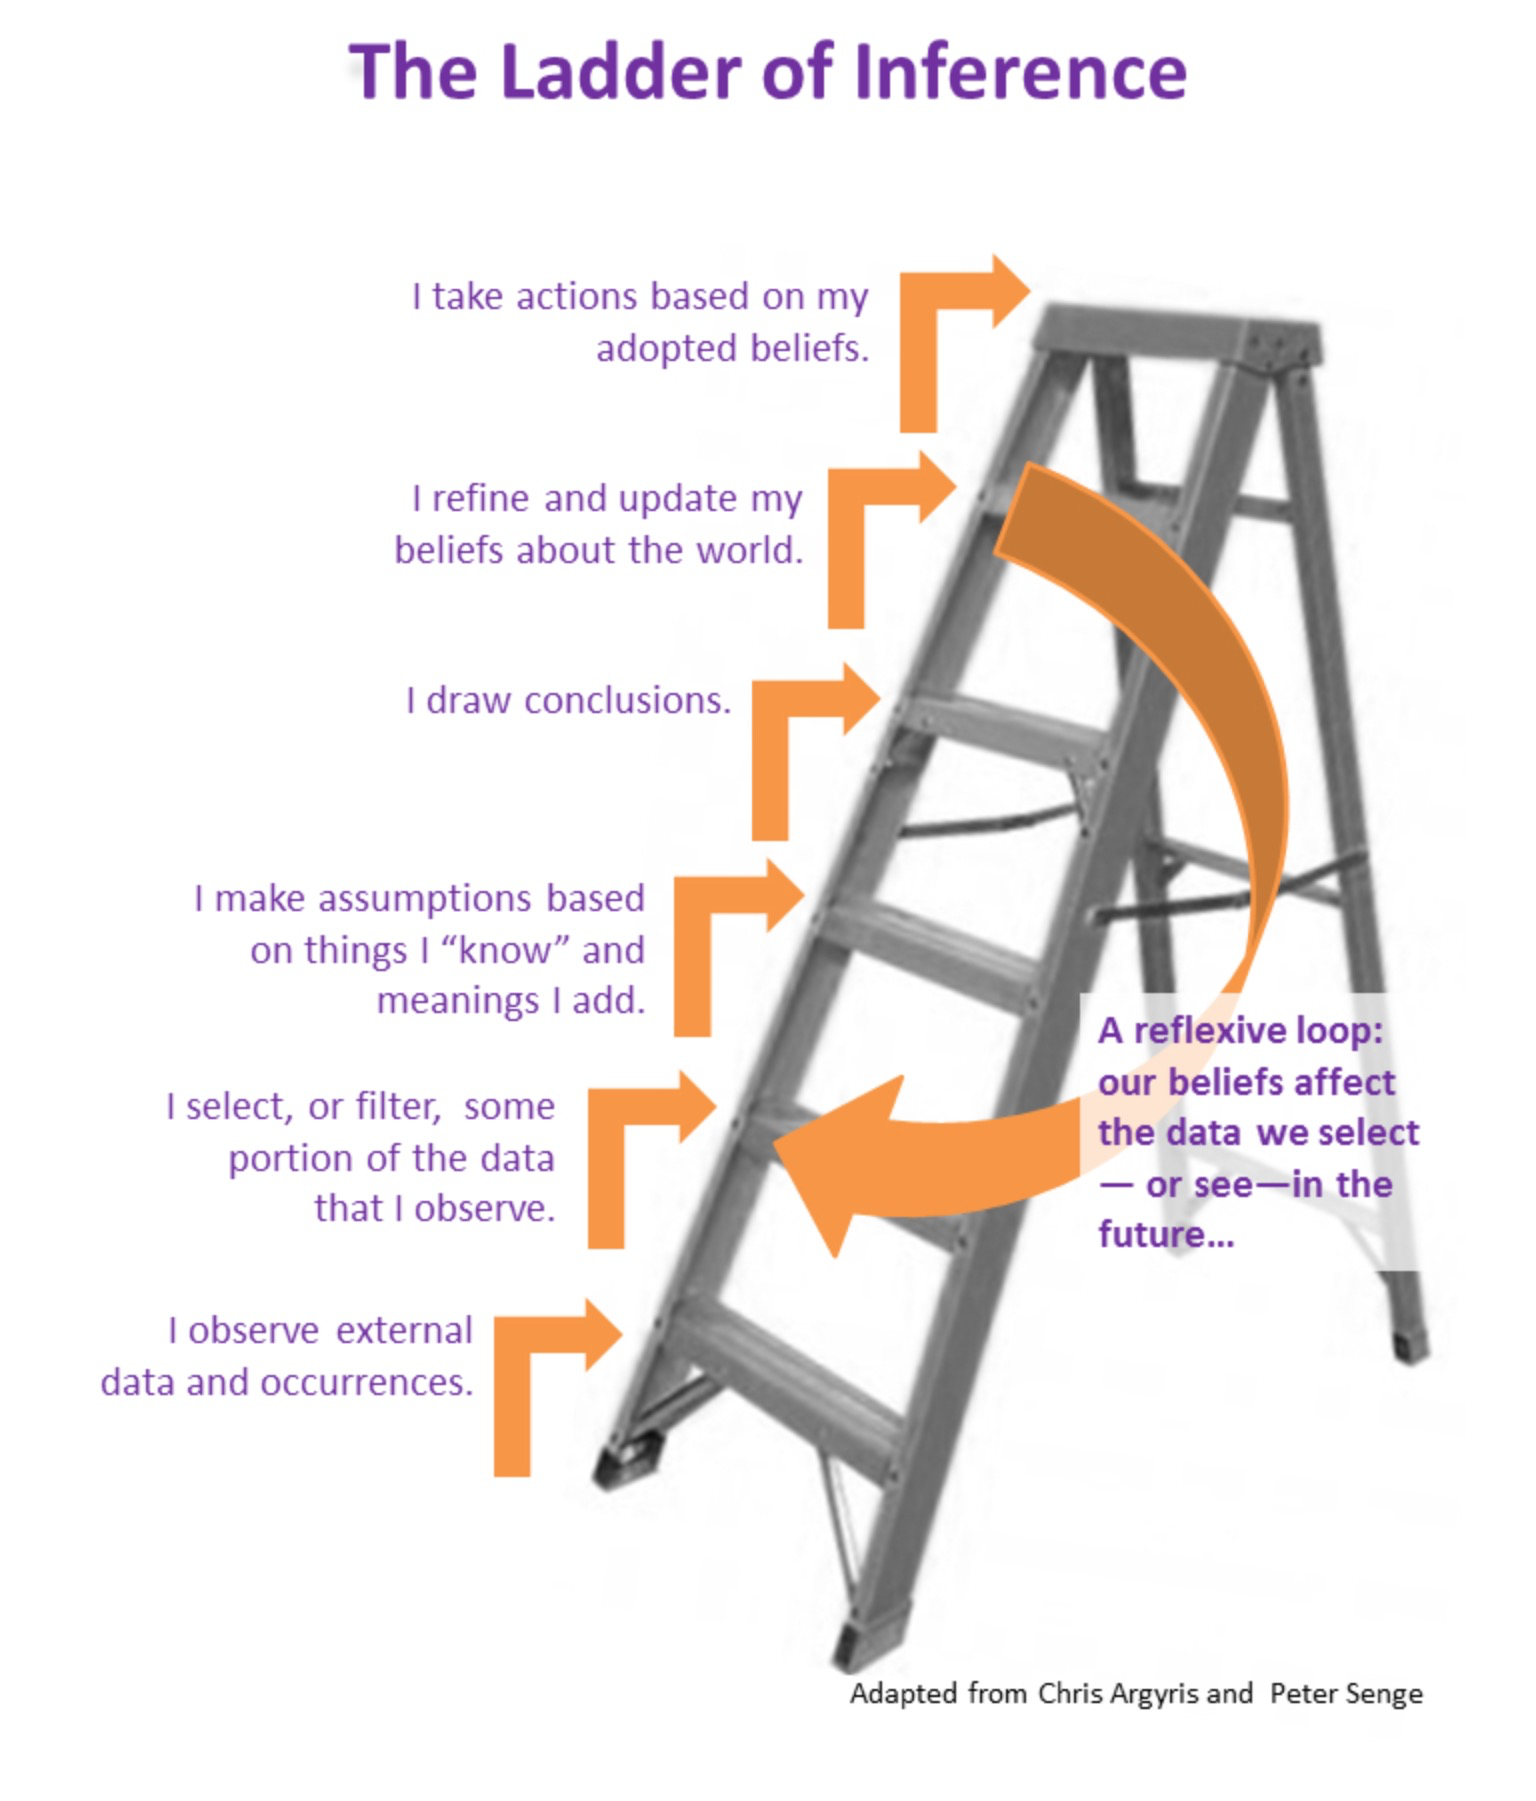 THE LADDER OF INFERENCE EPUB